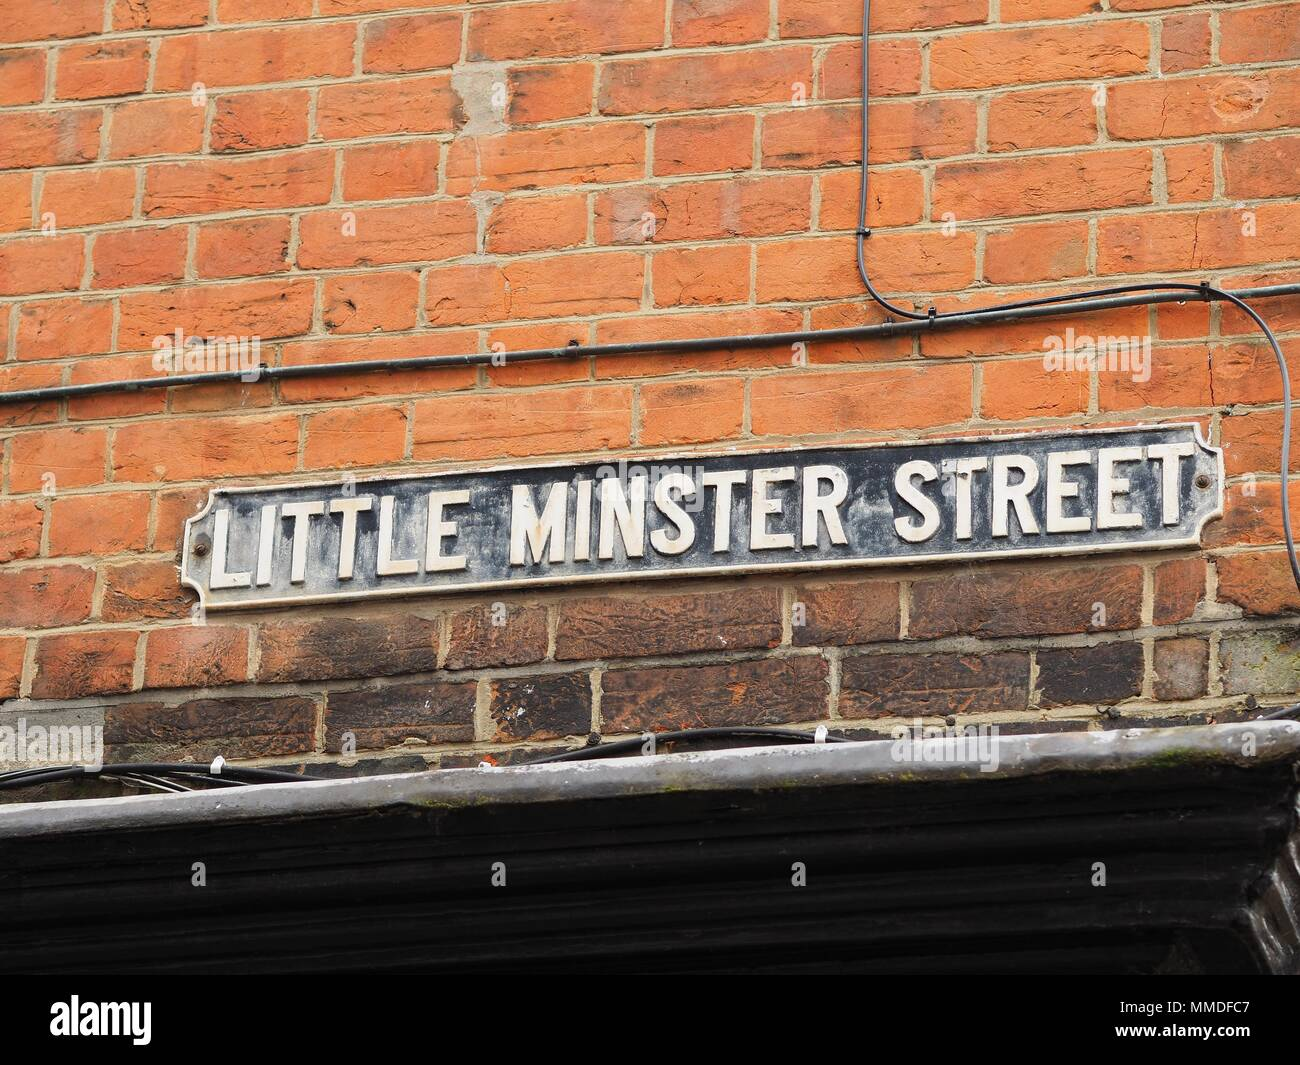 Little Minster Street Sign in Winchester - Stock Image